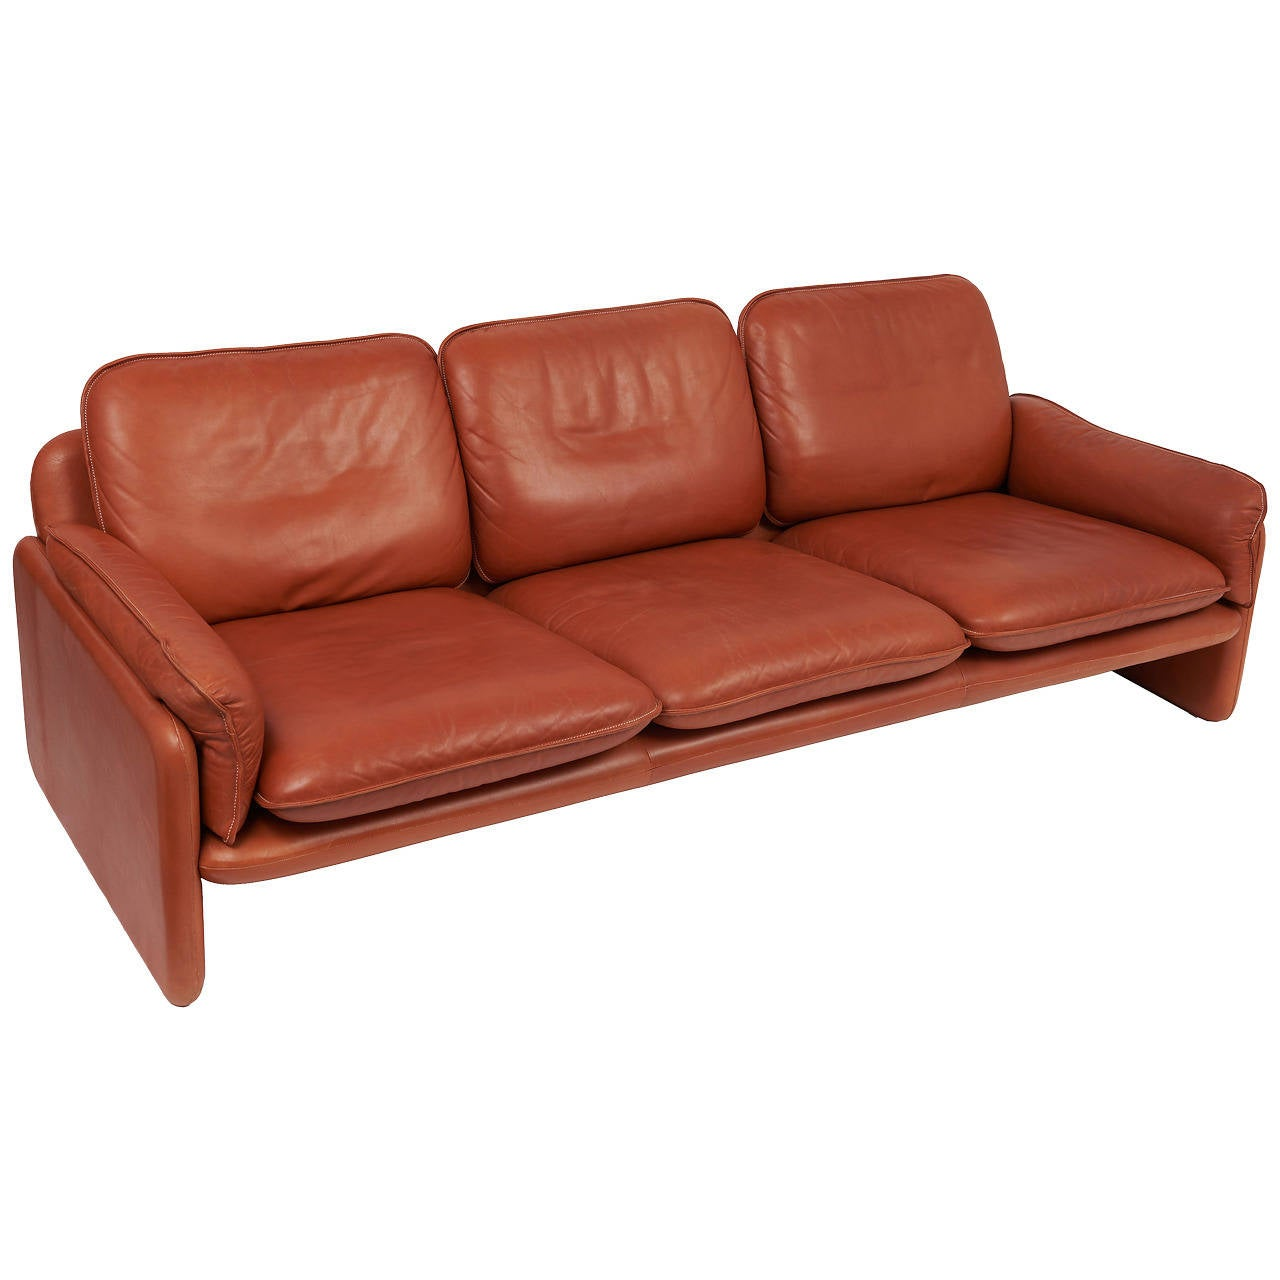 de sede three seat cognac aniline leather sofa circa 1970 for sale at 1stdibs. Black Bedroom Furniture Sets. Home Design Ideas